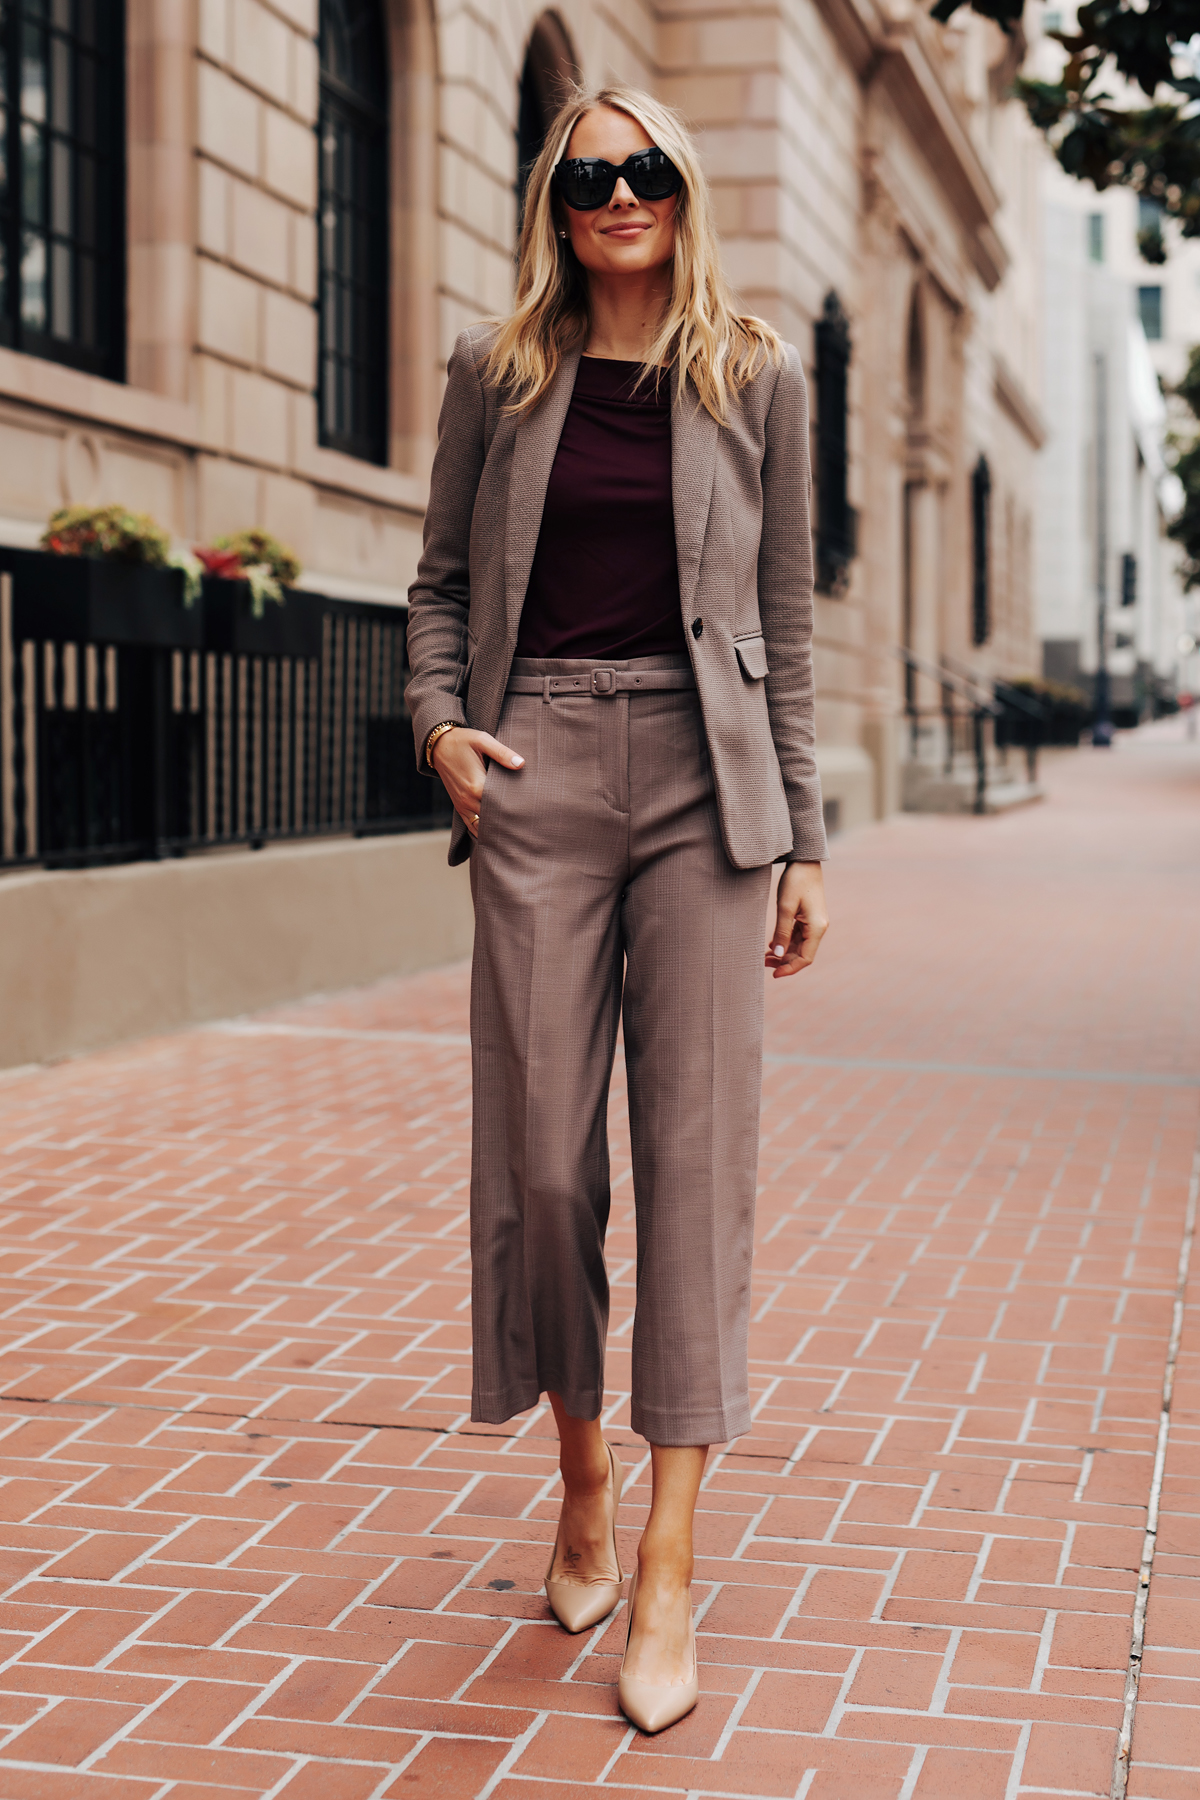 Fashion Jackson Wearing Ann Taylor Taupe Blazer Purple Top Taupe Wide Leg Cropped Pants Nude Pumps Fall Workwear Outfit